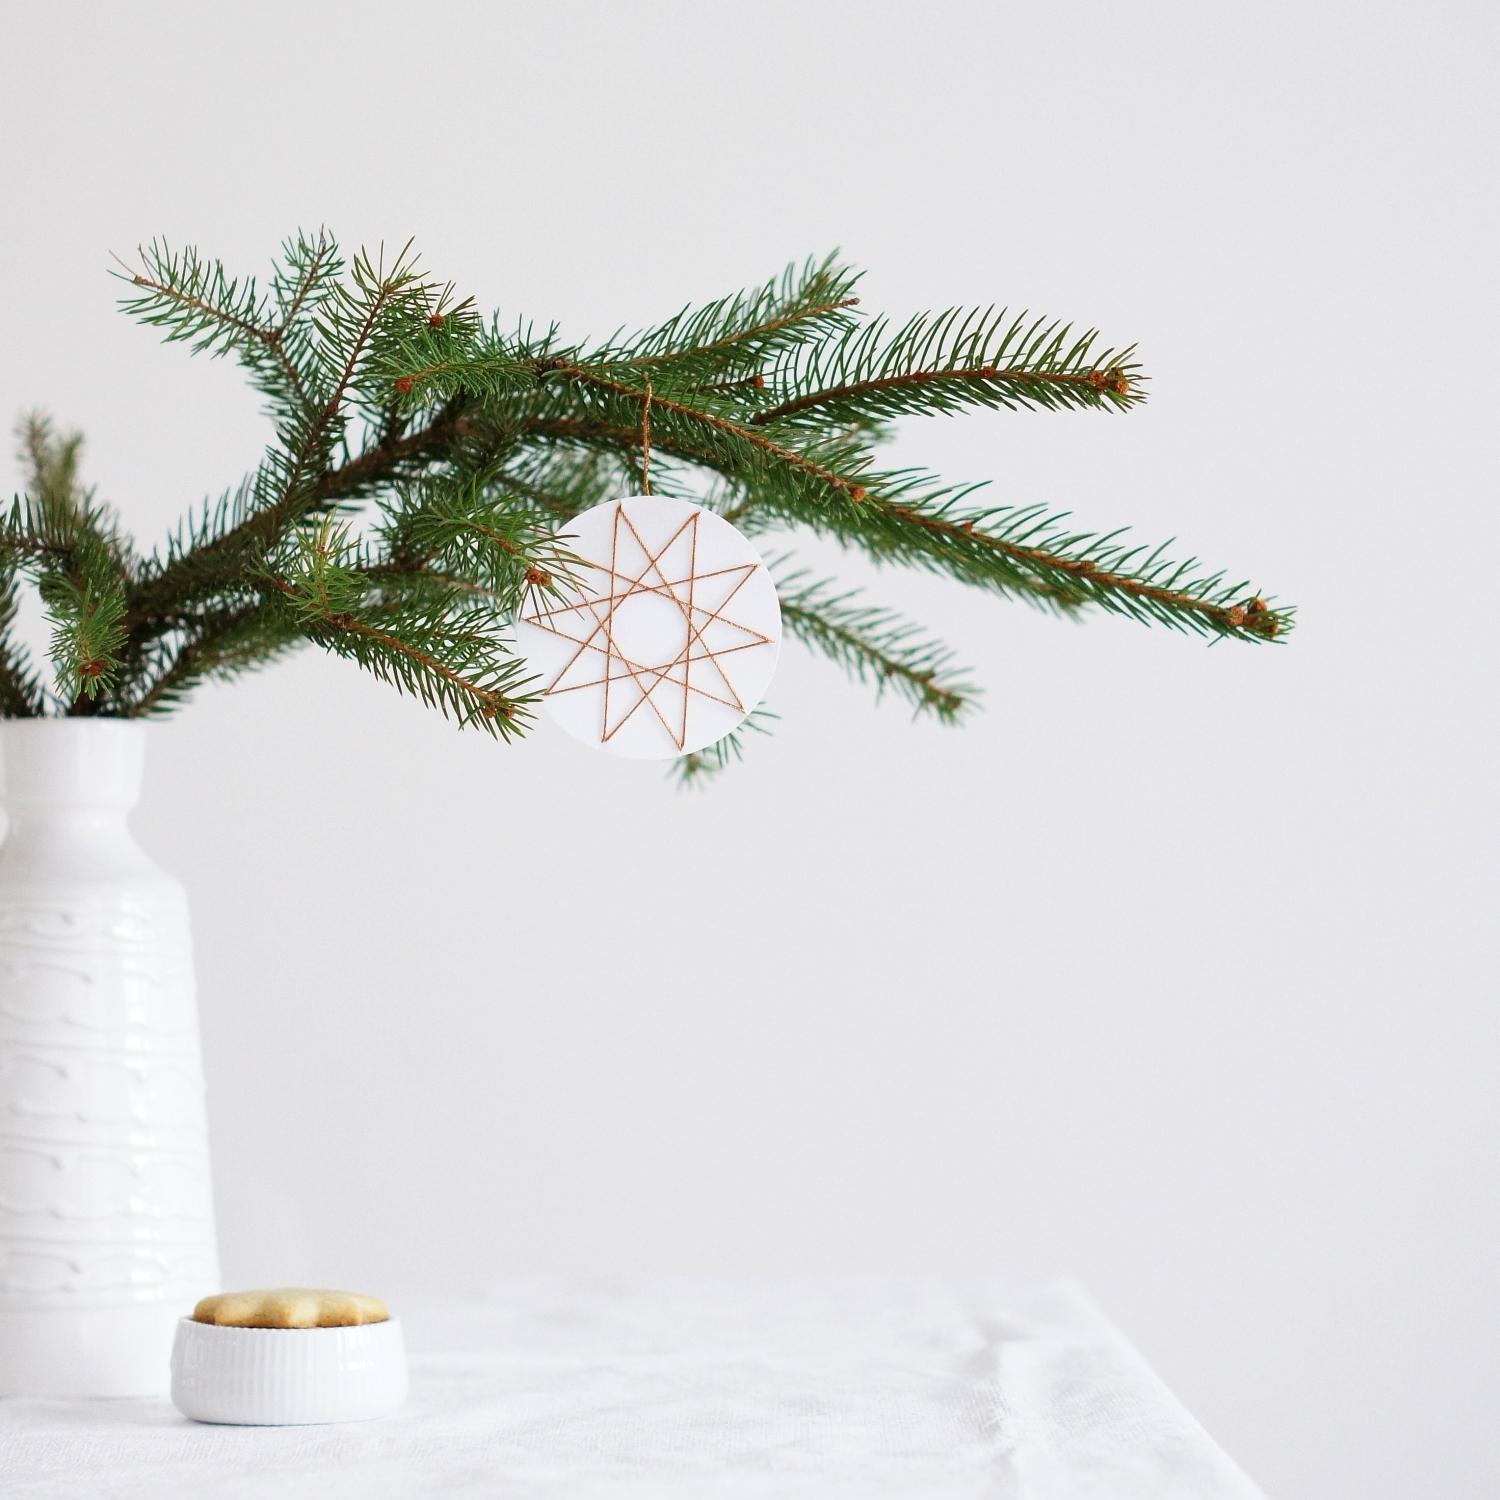 DIY Fadenstern #advent #weihnachten #diy #styling #kupfergarn